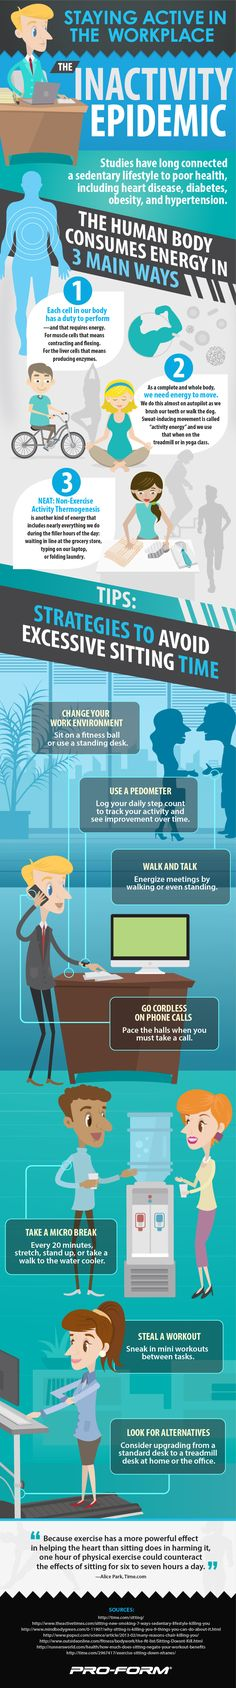 The Inactivity Epidemic: How to Activate Your Workplace #infographic #Health #Fitness